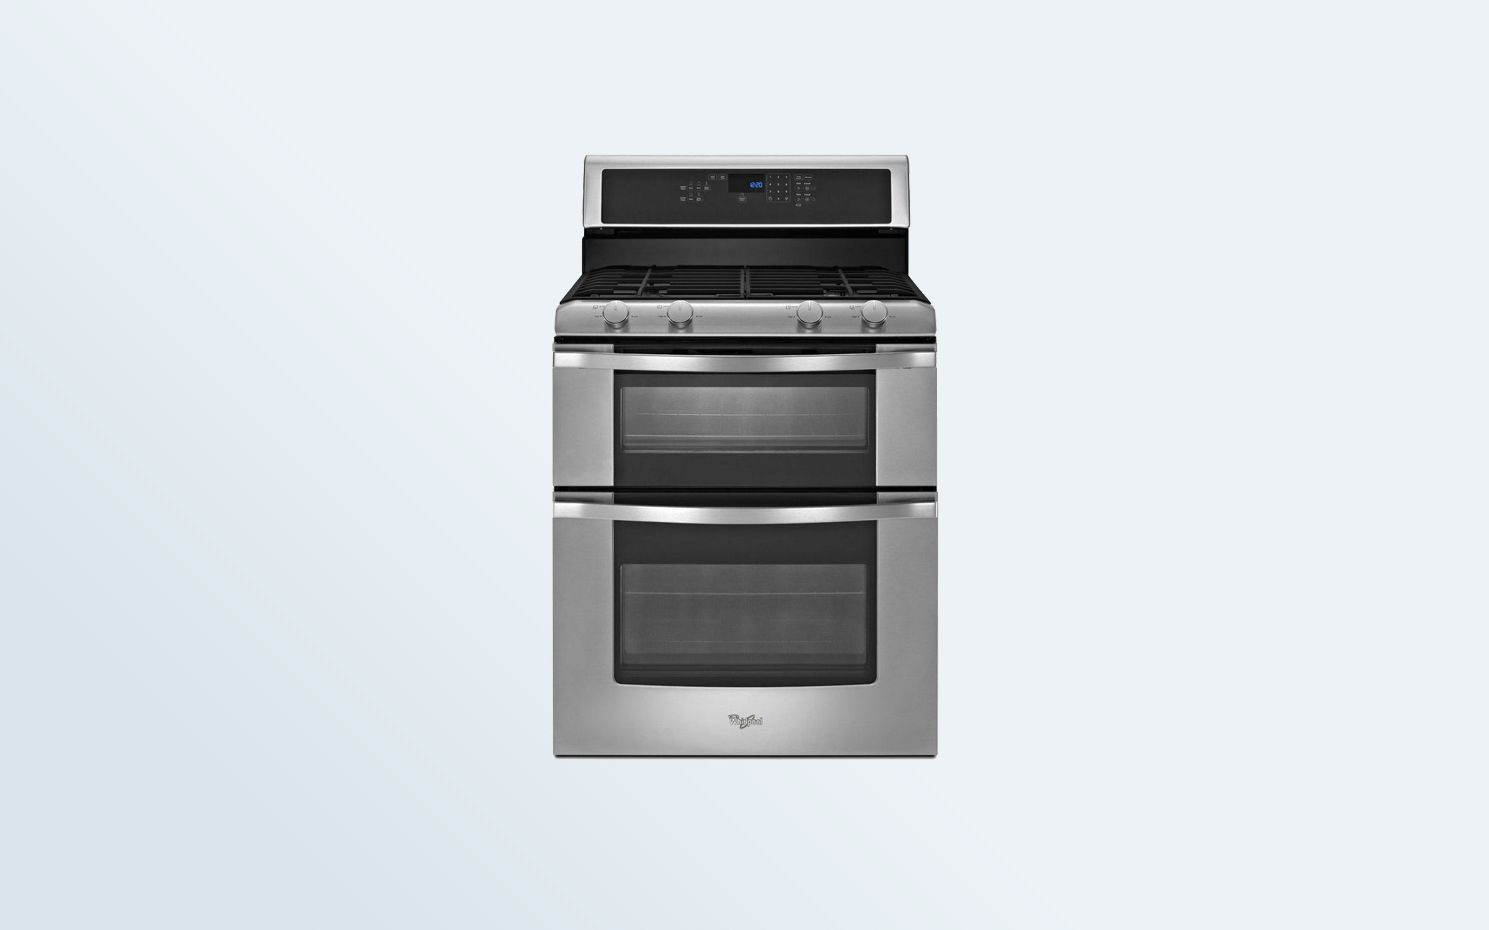 Best Double Oven Ranges Of 2019 Gas And Electric Stove Reviews Best Double Oven Double Oven Range Double Oven